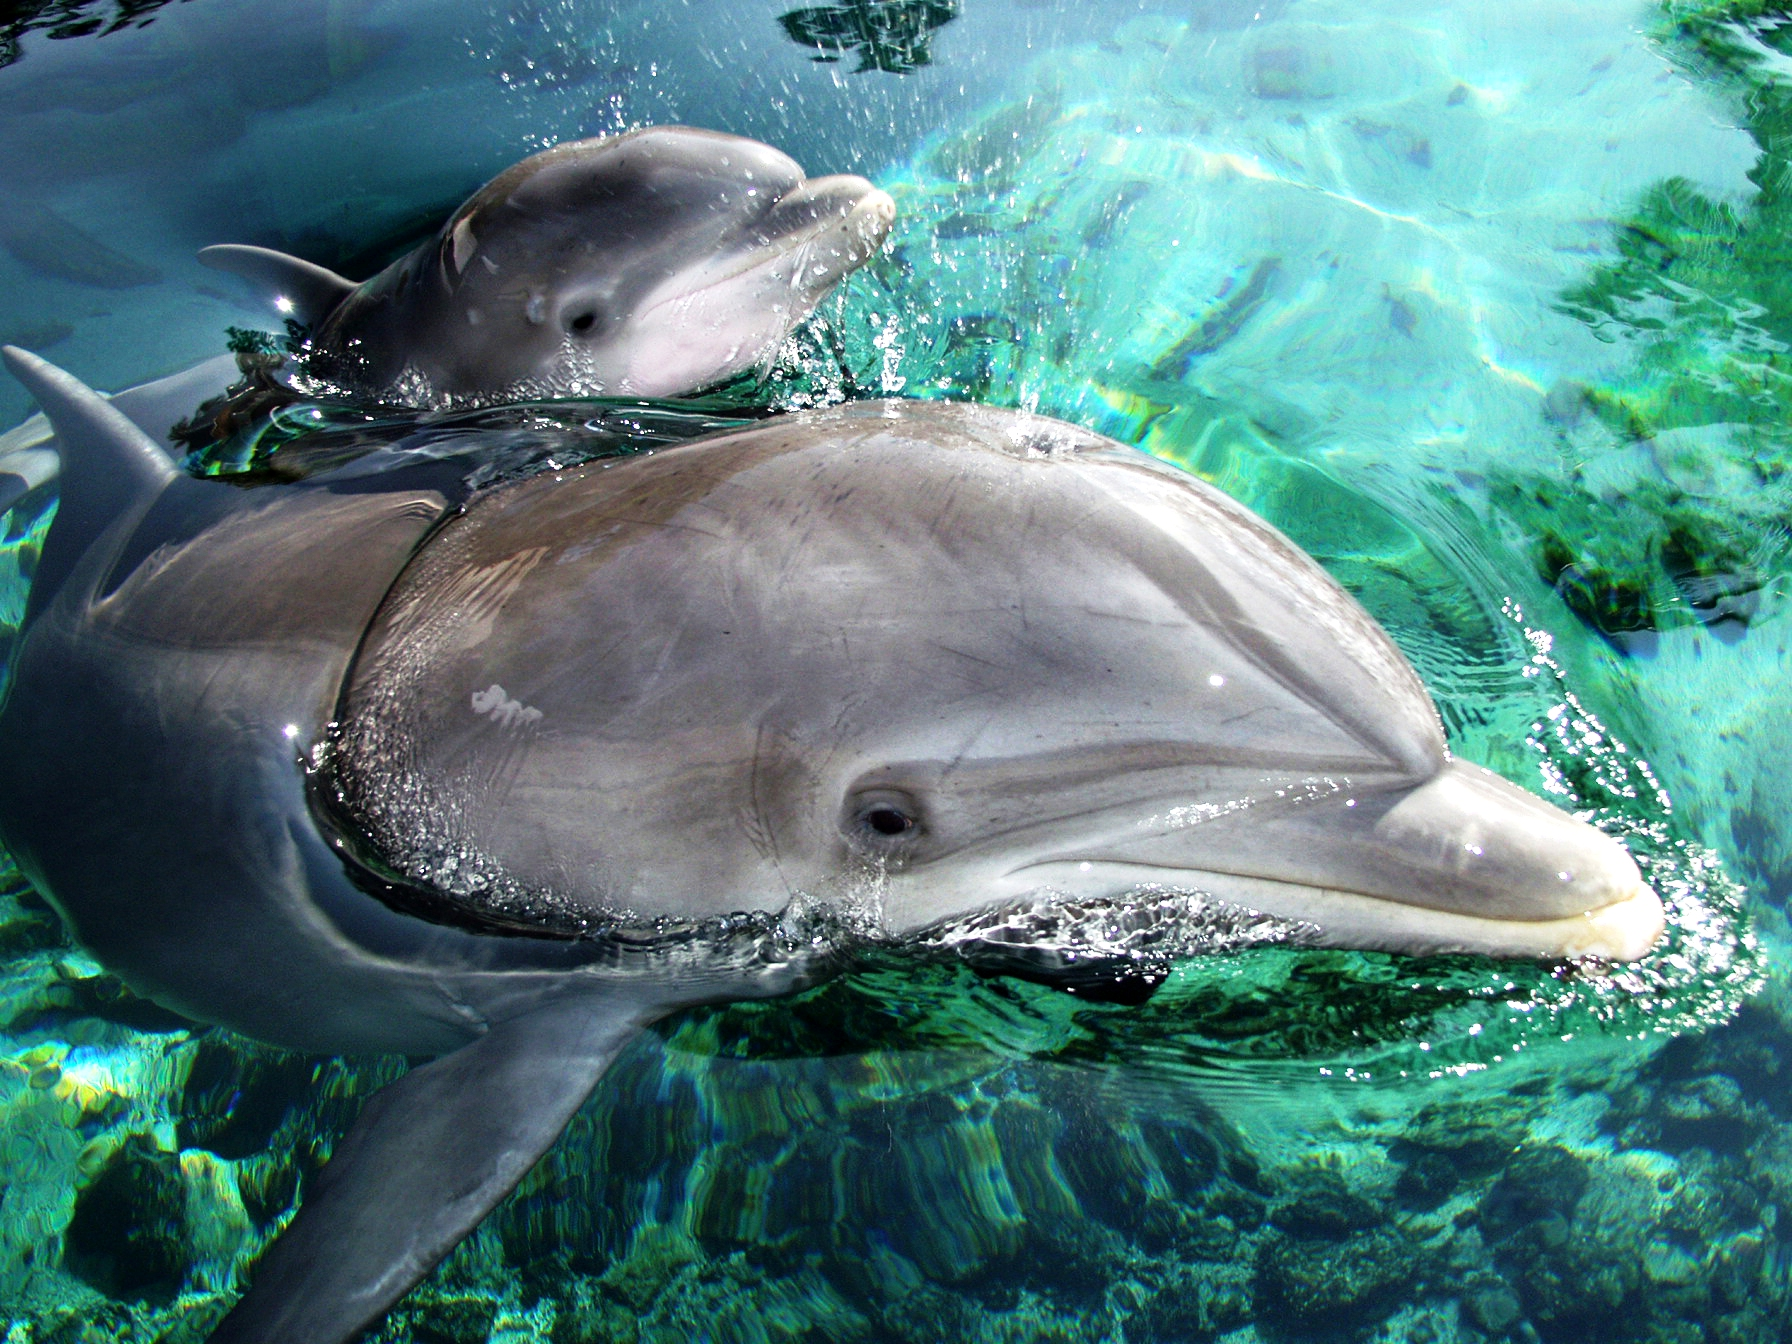 images of baby dolphins - photo #27